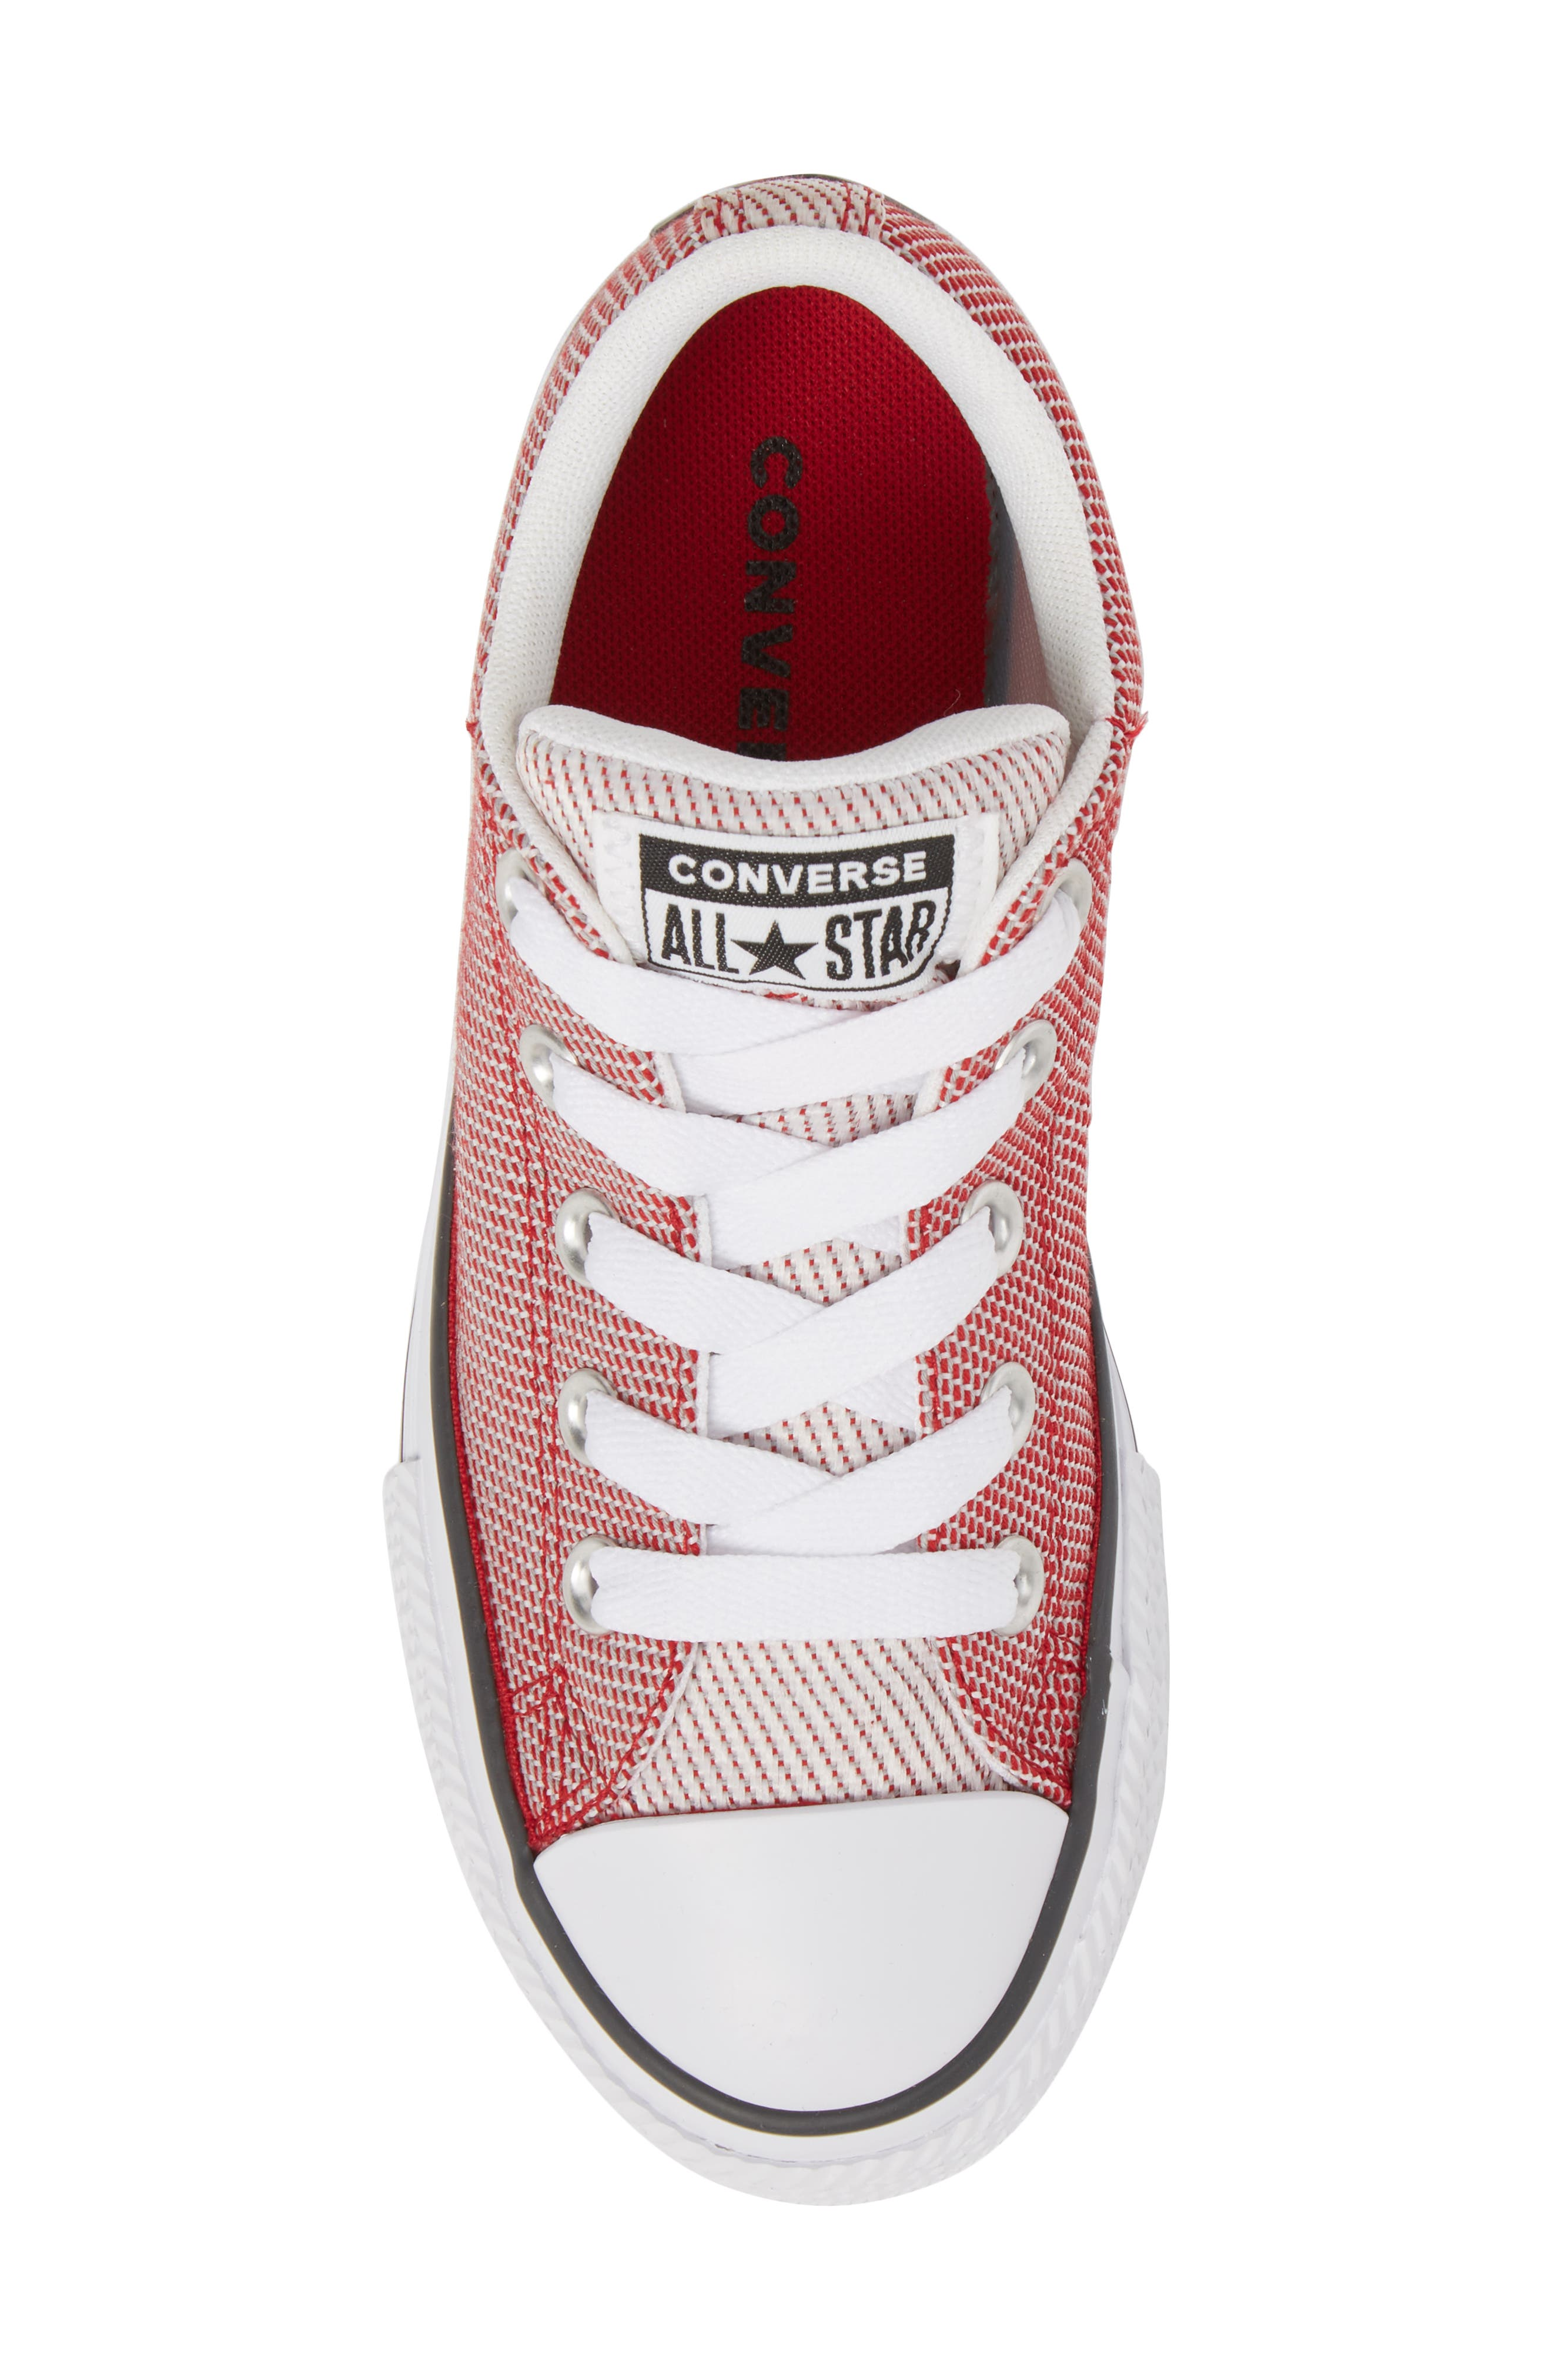 CONVERSE,                             Chuck Taylor<sup>®</sup> All Star<sup>®</sup> Woven Street Sneaker,                             Alternate thumbnail 5, color,                             600